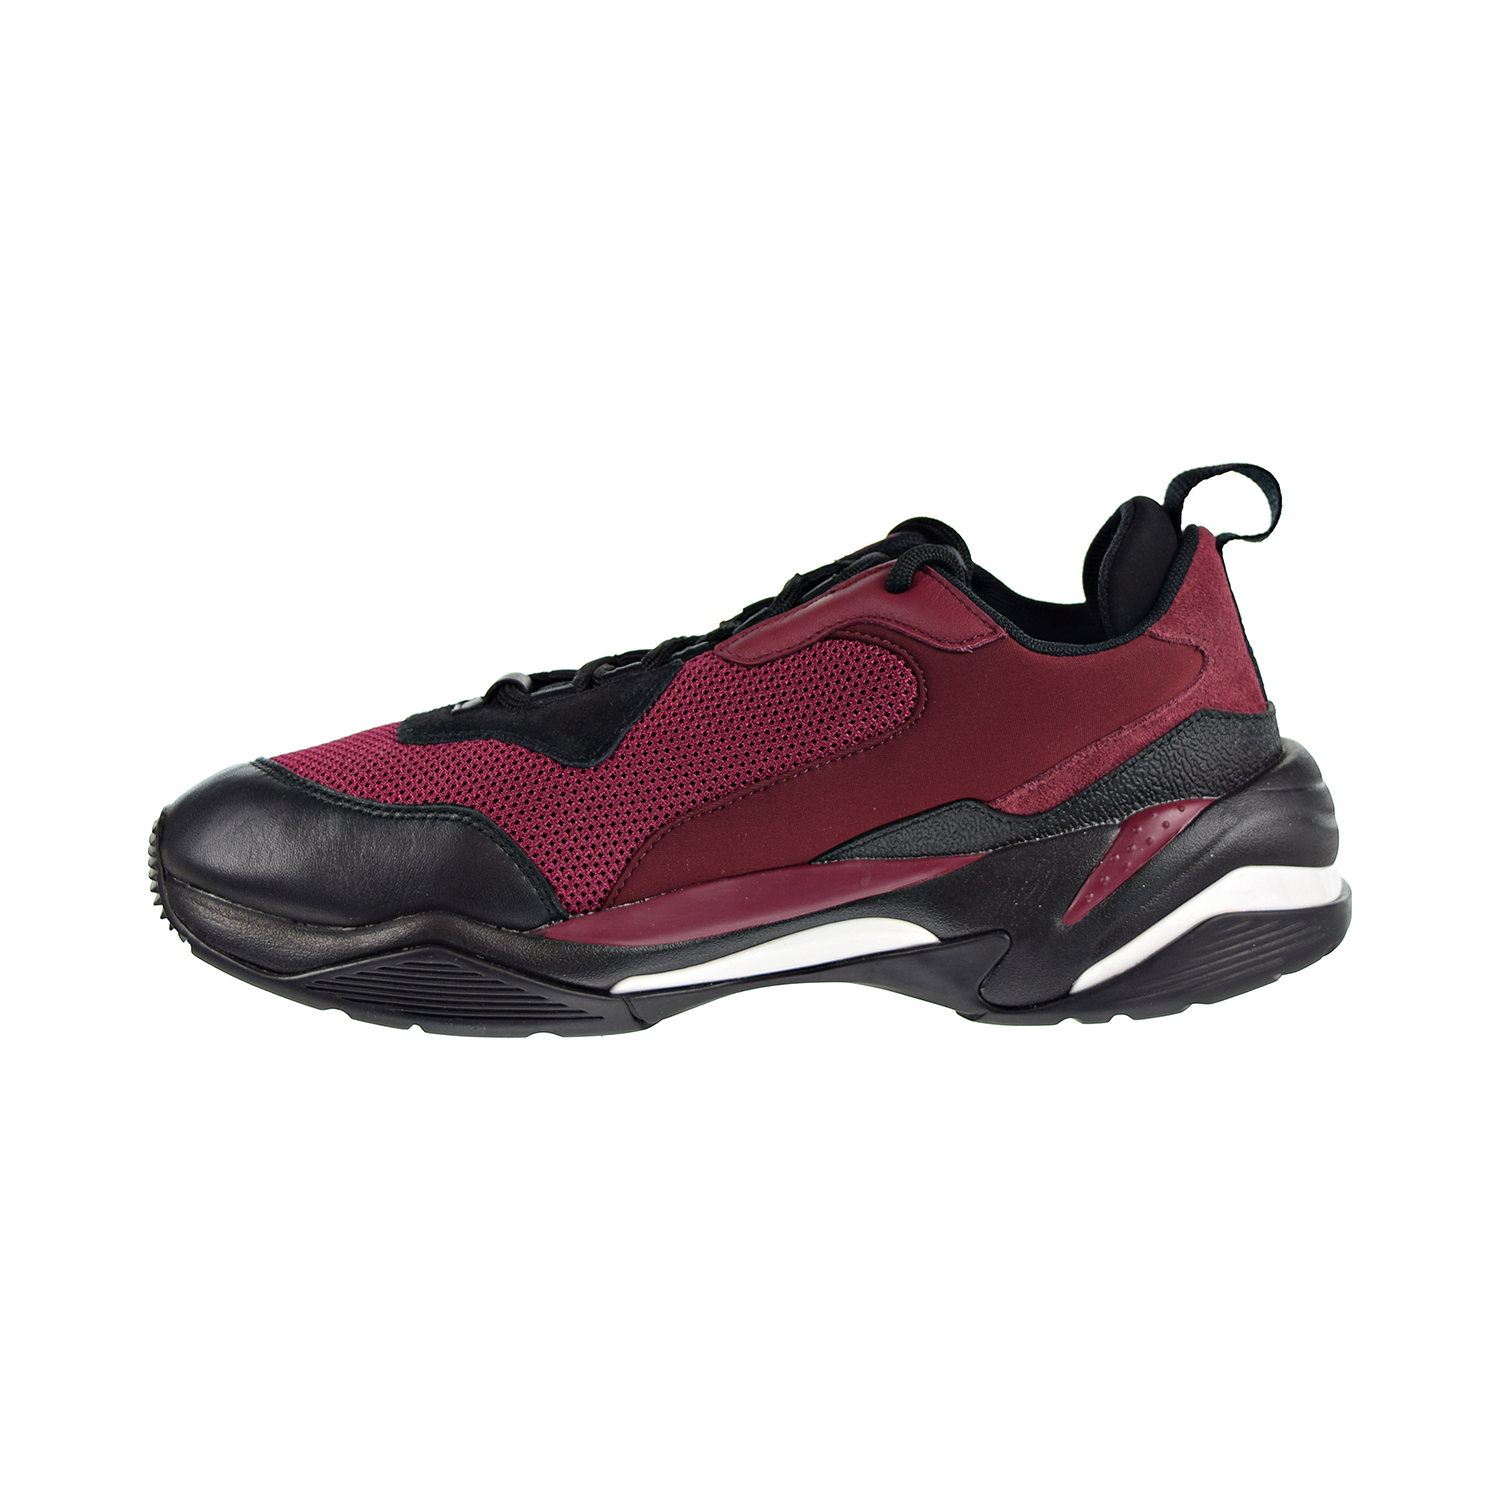 6383323cf6b Puma Thunder Spectra Men s Shoes Rhododendron Black T Port 367516-03 ...